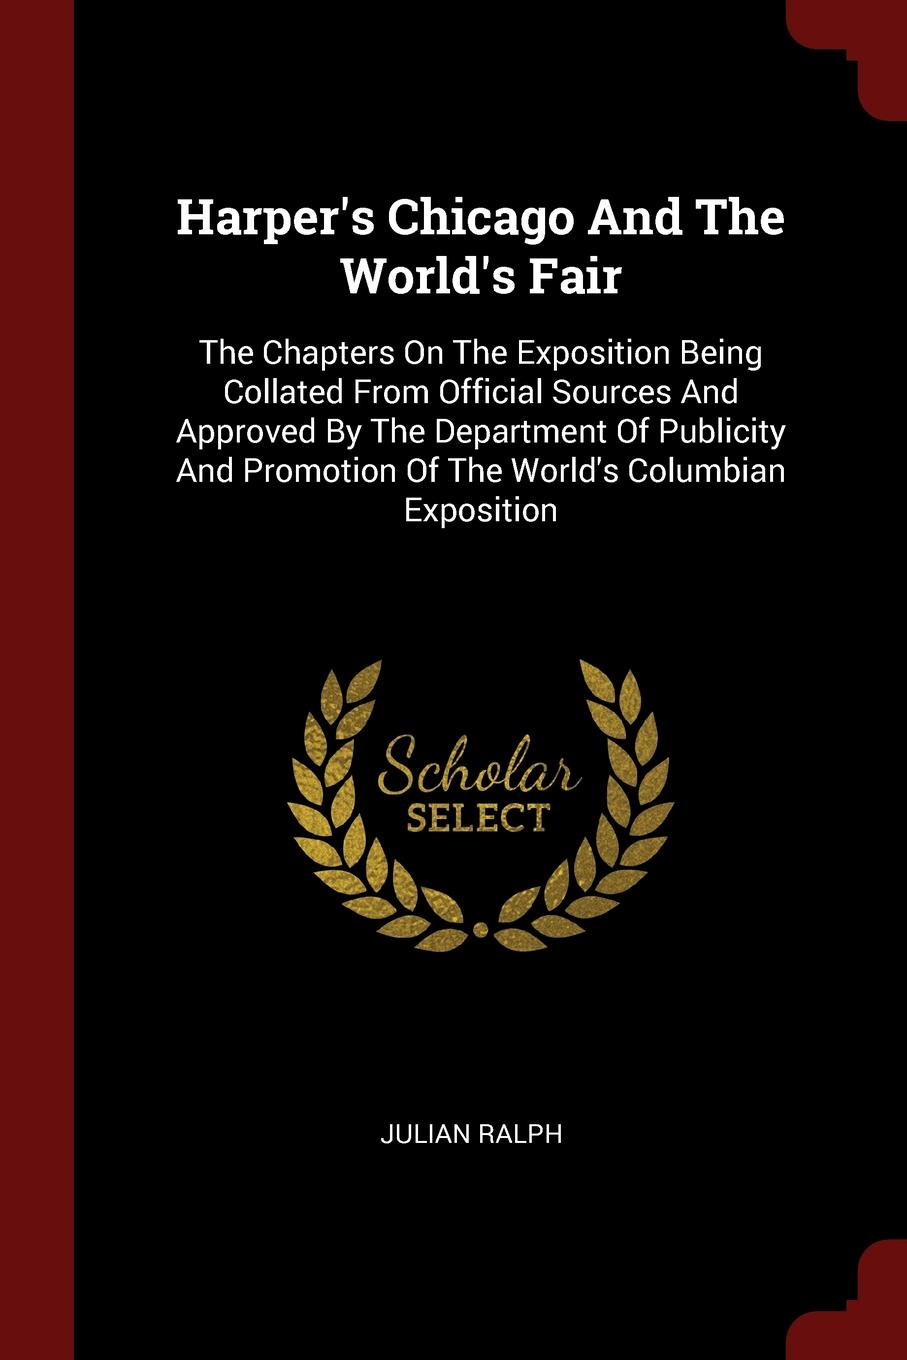 Julian Ralph Harper.s Chicago And The World.s Fair. The Chapters On The Exposition Being Collated From Official Sources And Approved By The Department Of Publicity And Promotion Of The World.s Columbian Exposition